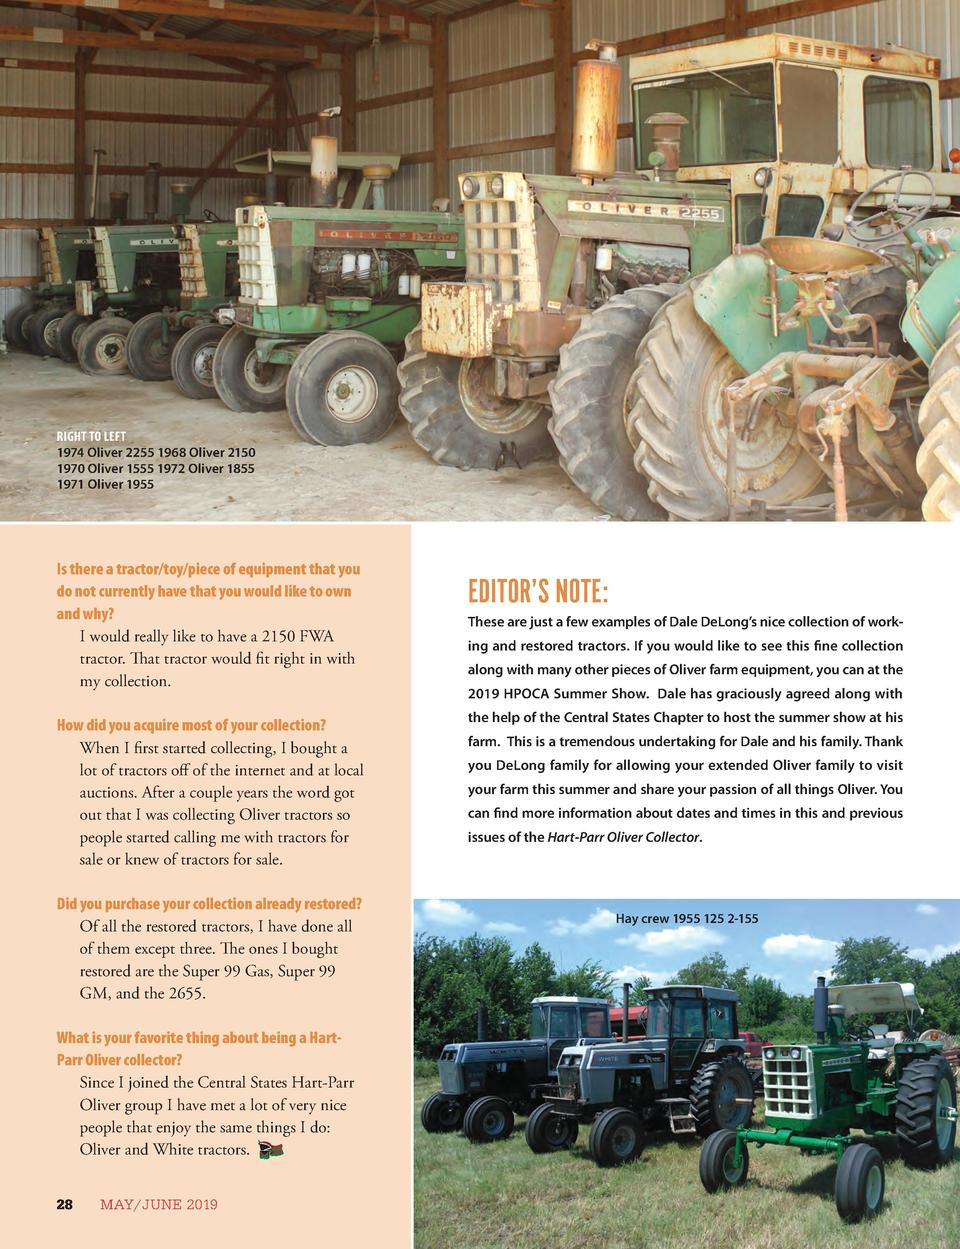 Agco Oliver farm /& historic book tractor and equip ads Tim putt NEW 2015 nice